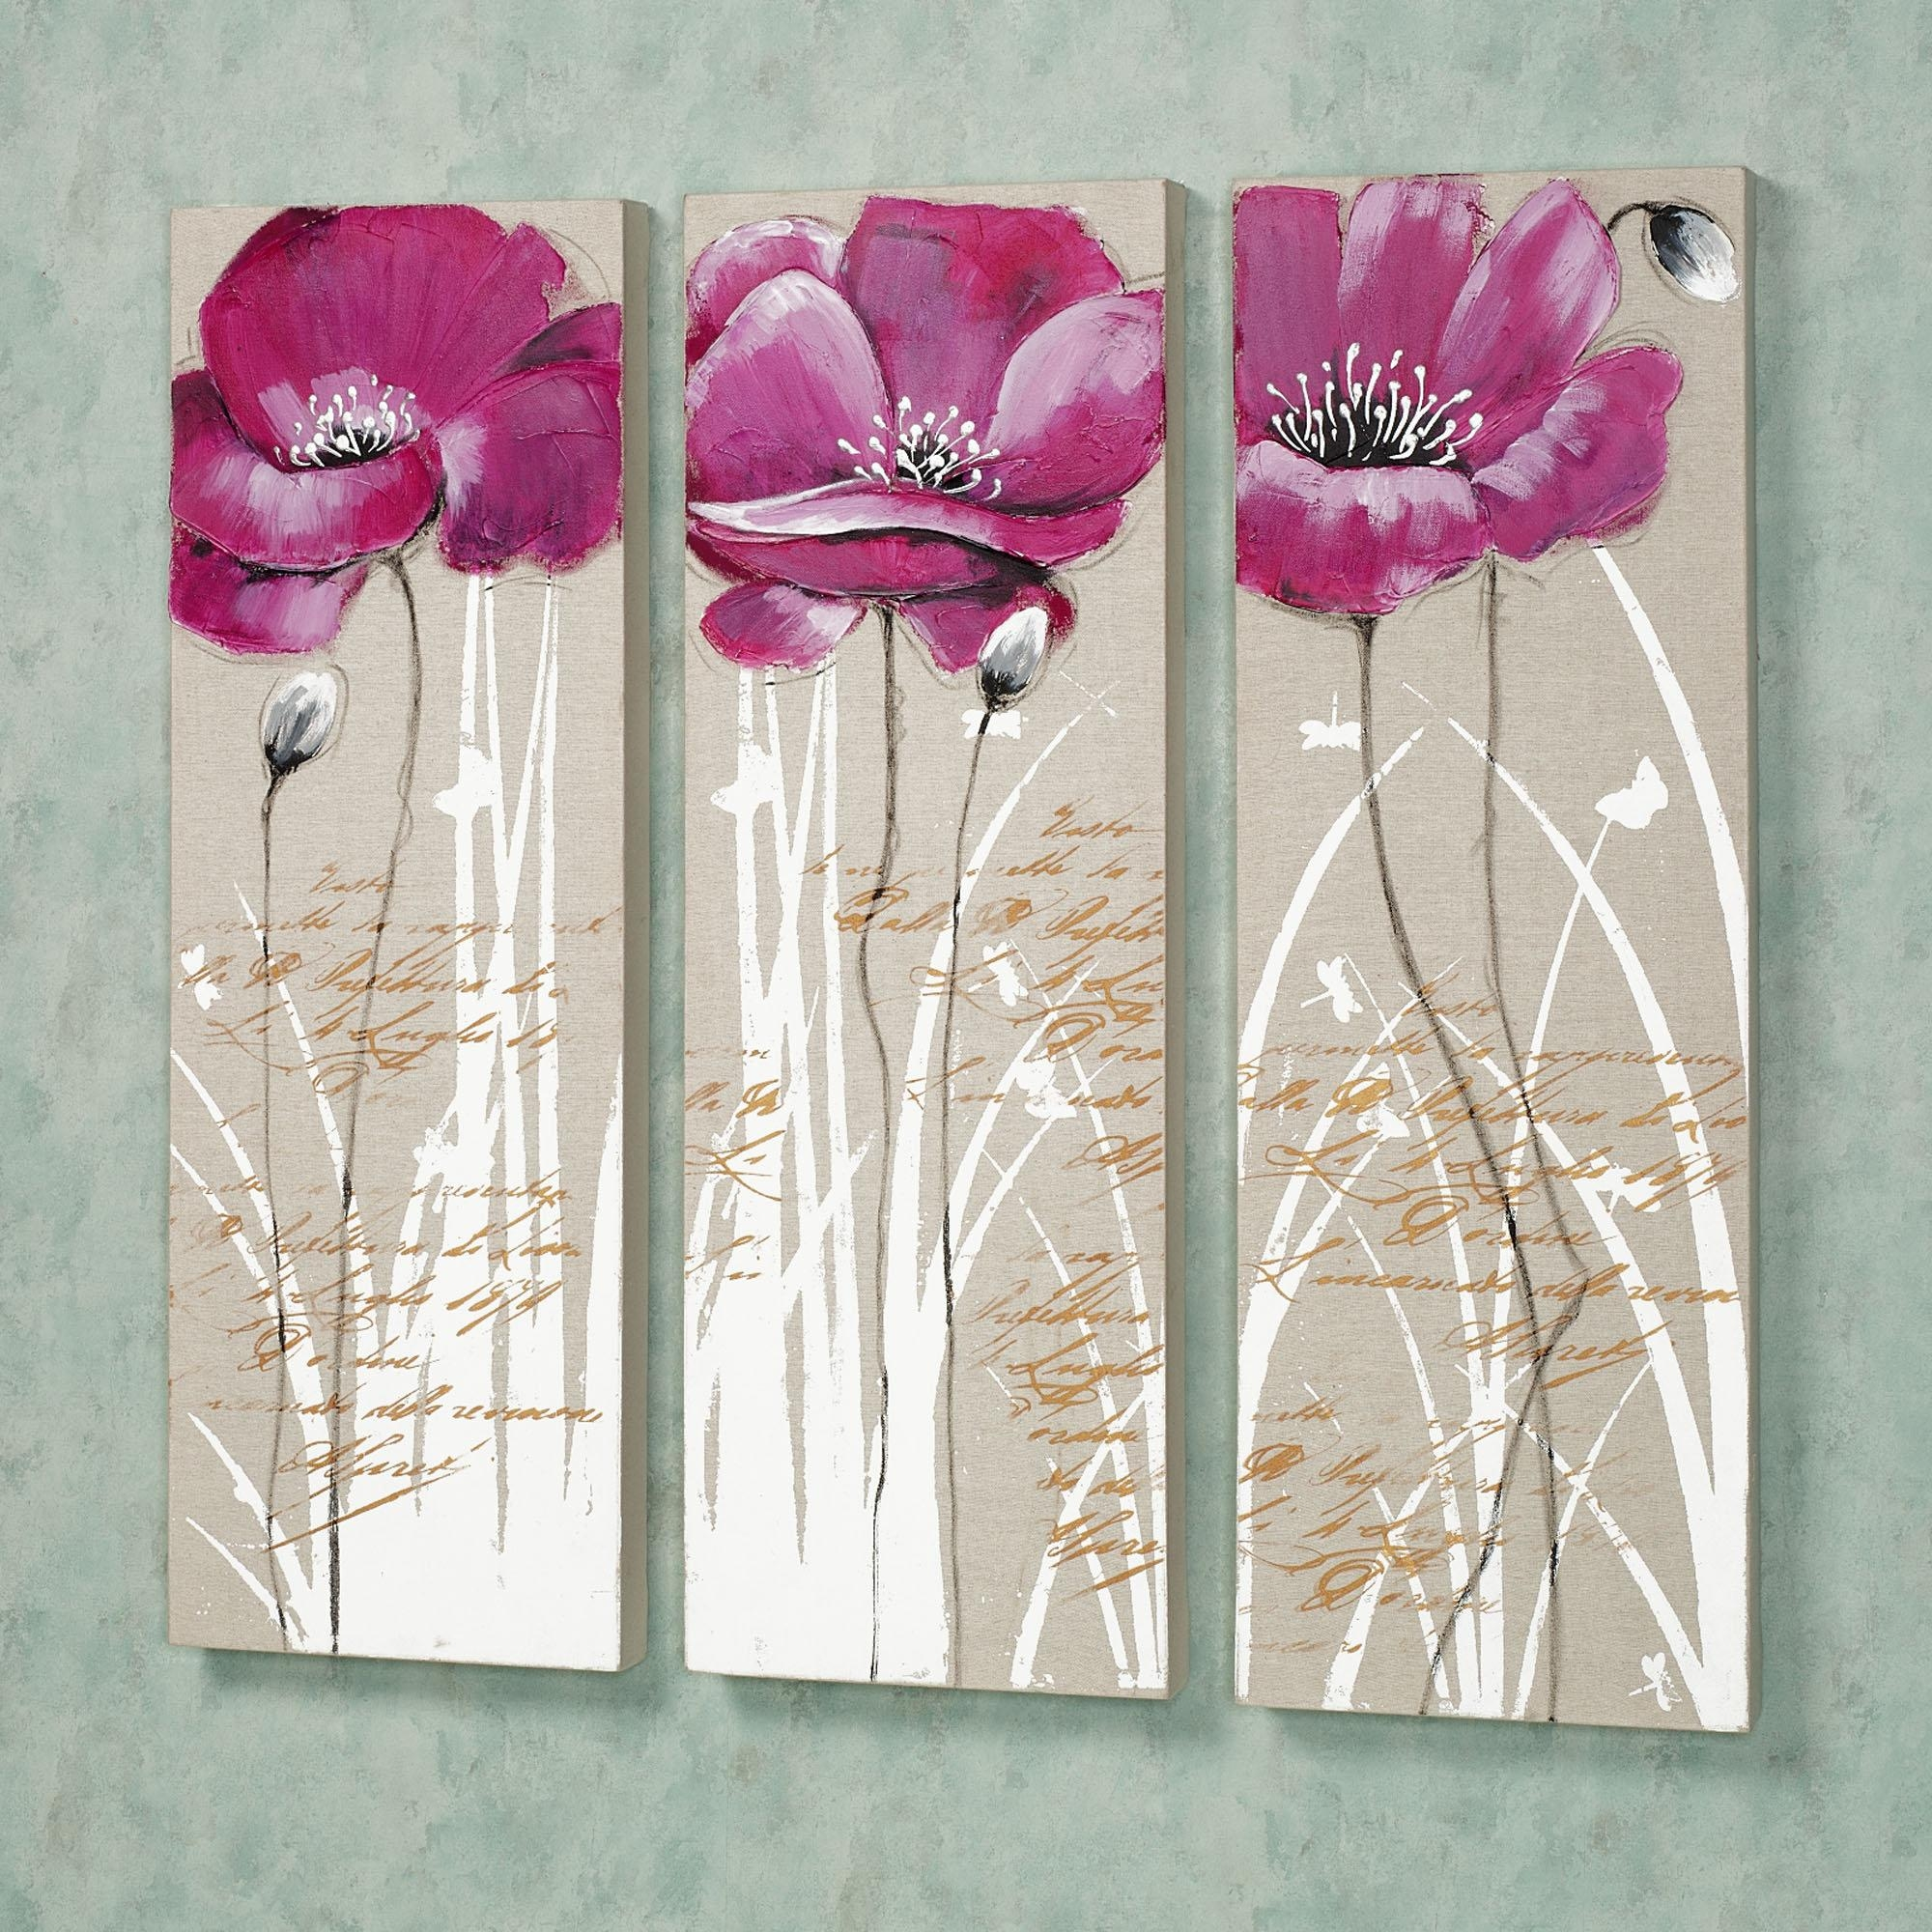 Wall Art Designs: Charming Floral Pictures Pink Flower Canvas Wall Intended For Pink Flower Wall Art (Image 17 of 20)